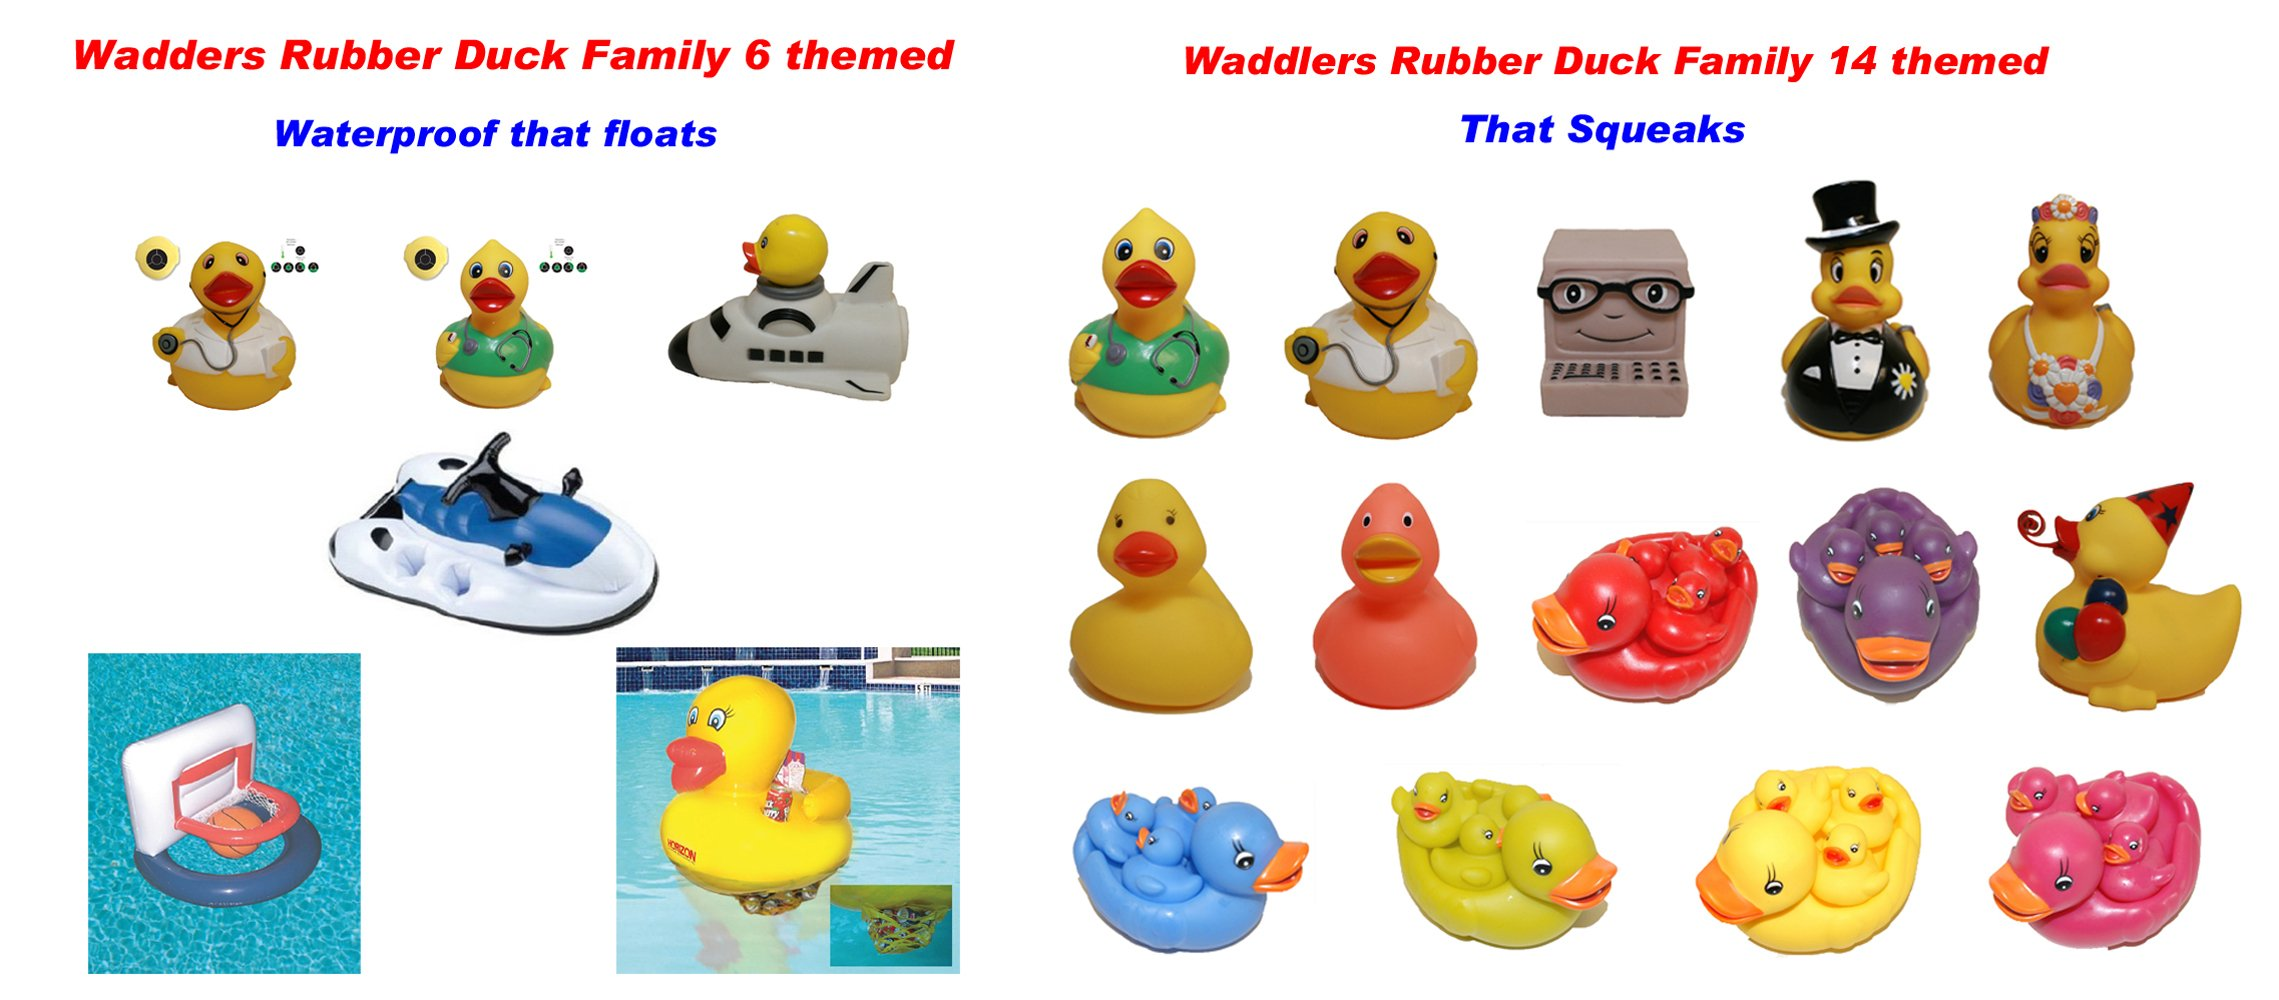 Hockey Rubber Ducks , Waddlers Brand, Bulk Pack 6,12,24,48,96 Pcs., Bath Rubber Toy Ducky Birthday Gift-all Depts. Hockey Player Deluxe Gift QTY (96) by Waddlers (Image #5)